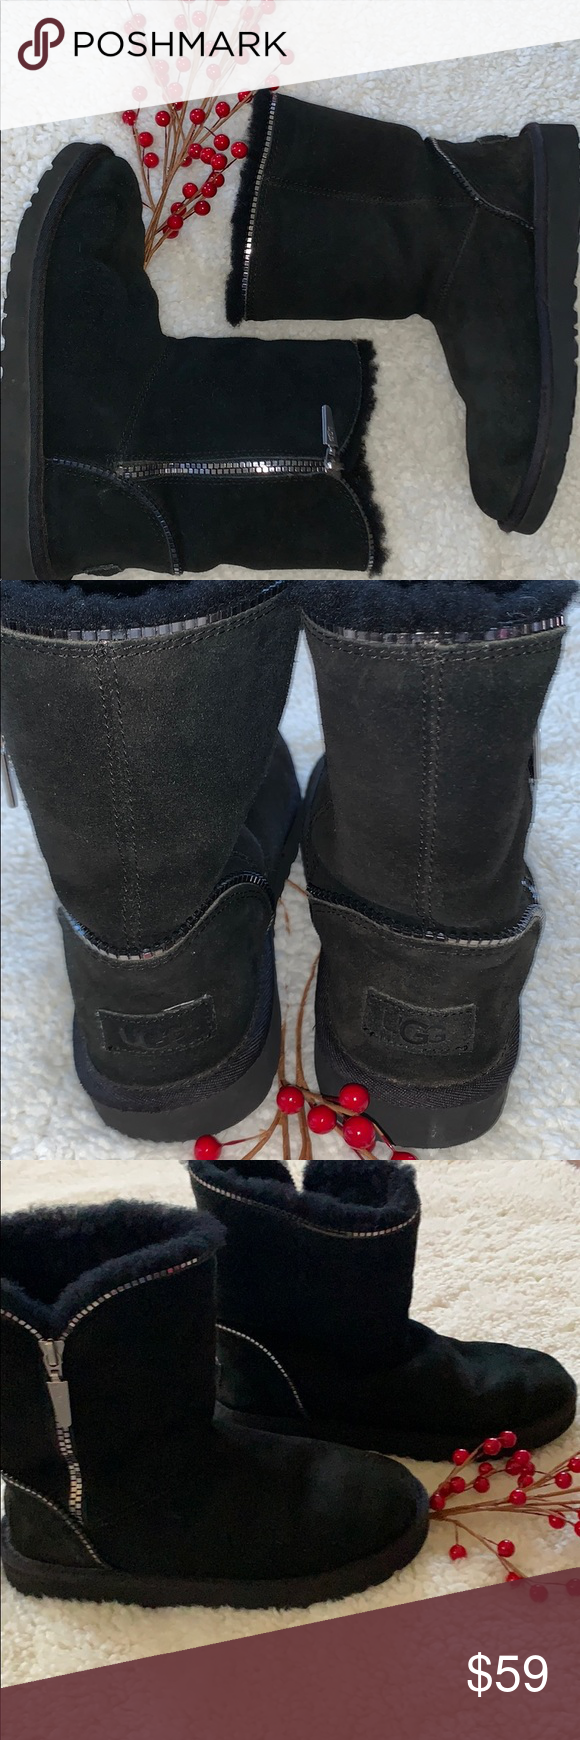 ❤️UGG Boots SIZE 4 Girls Black ❤️UGG Boots Size 4 Girls Black; Shiny Silver Zippers with same zipper design encircling the top & also adorning the heel area; SUPER CUTE & in EXCELLENT Condition.